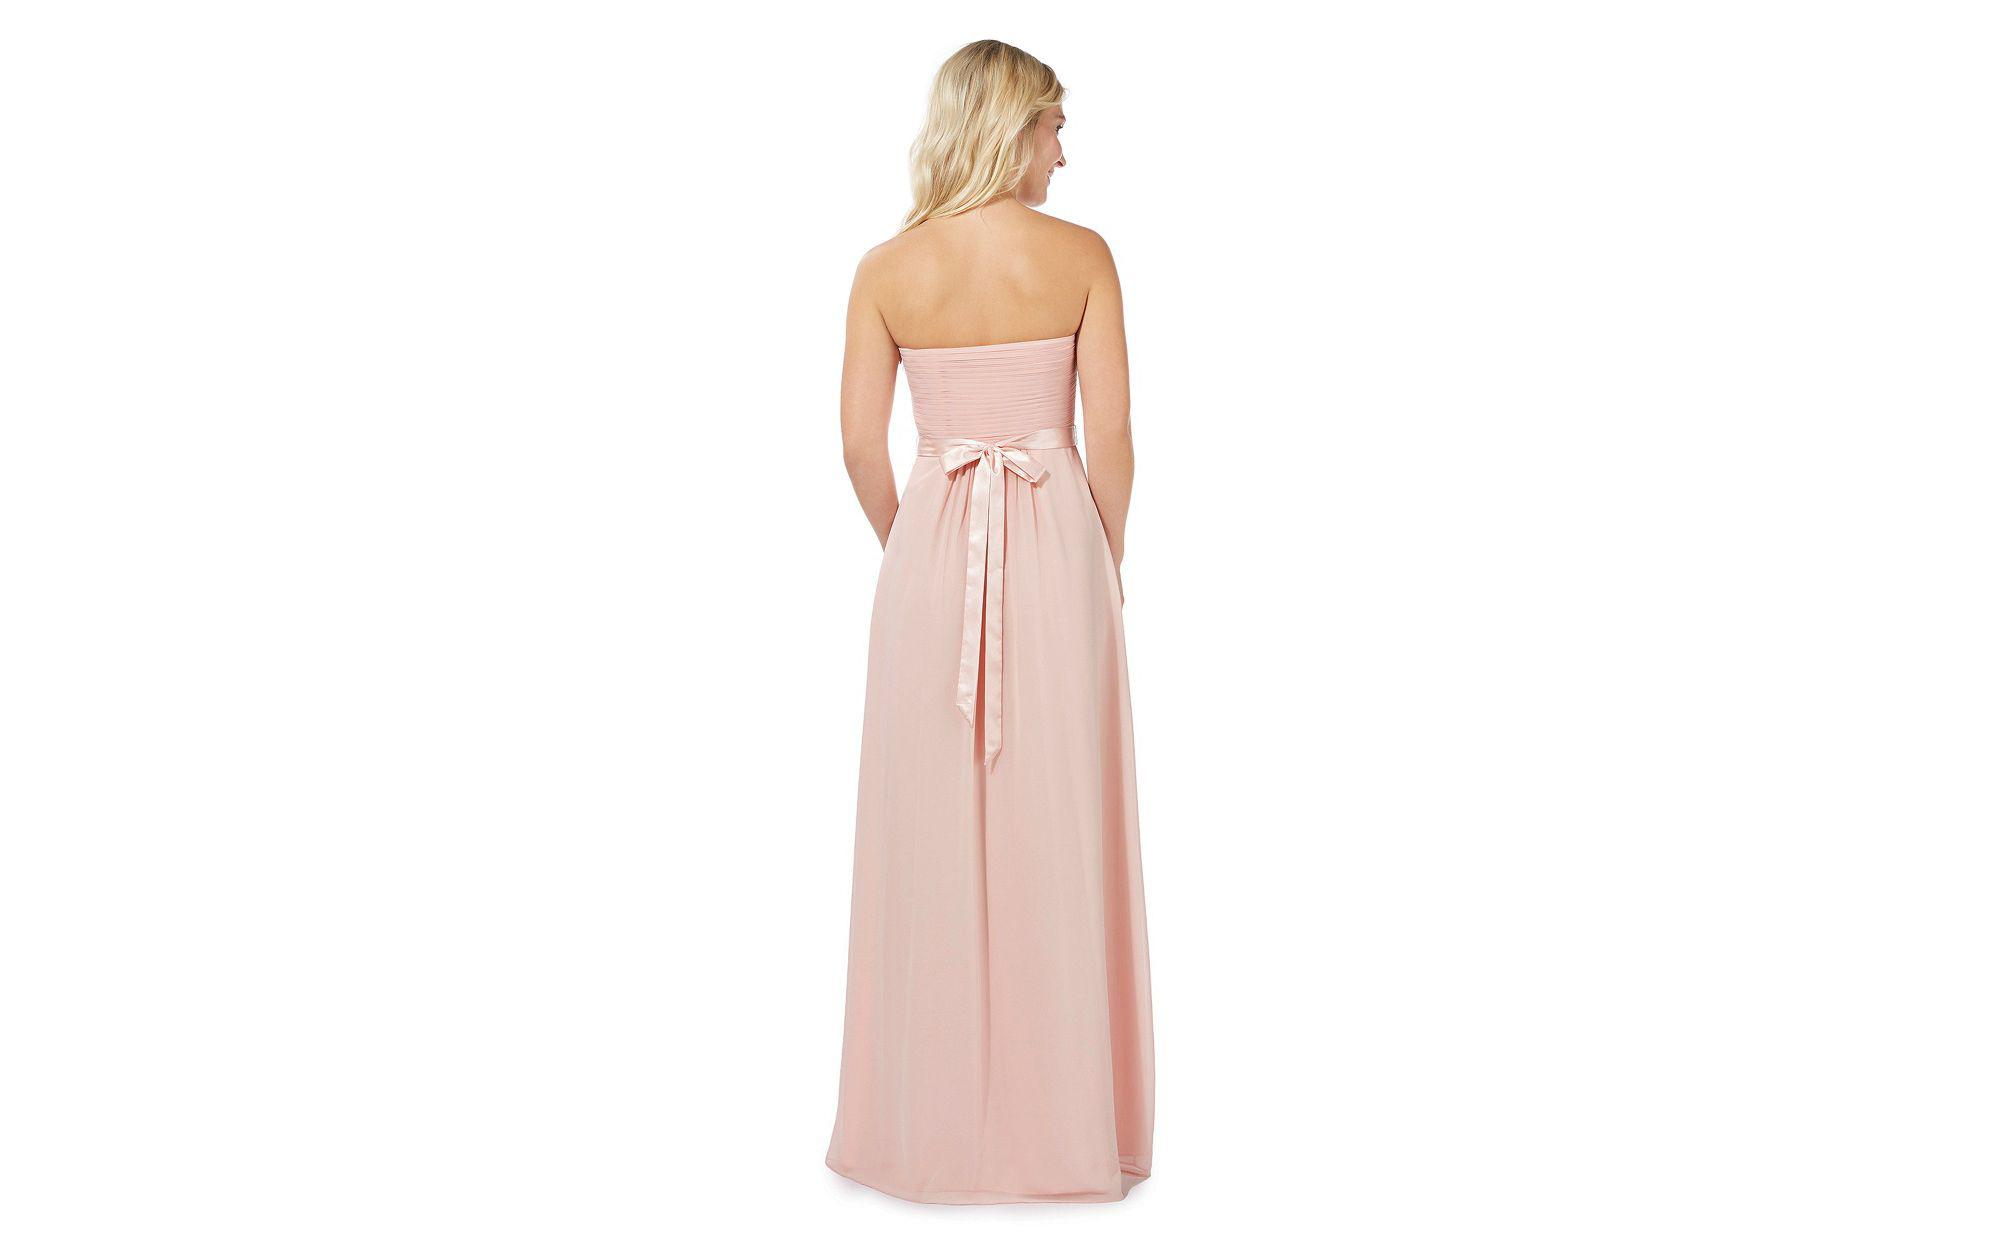 a218bec8dca2 Gallery. Previously sold at: Debenhams · Women's Bandeau Dresses Women's  Pink ...